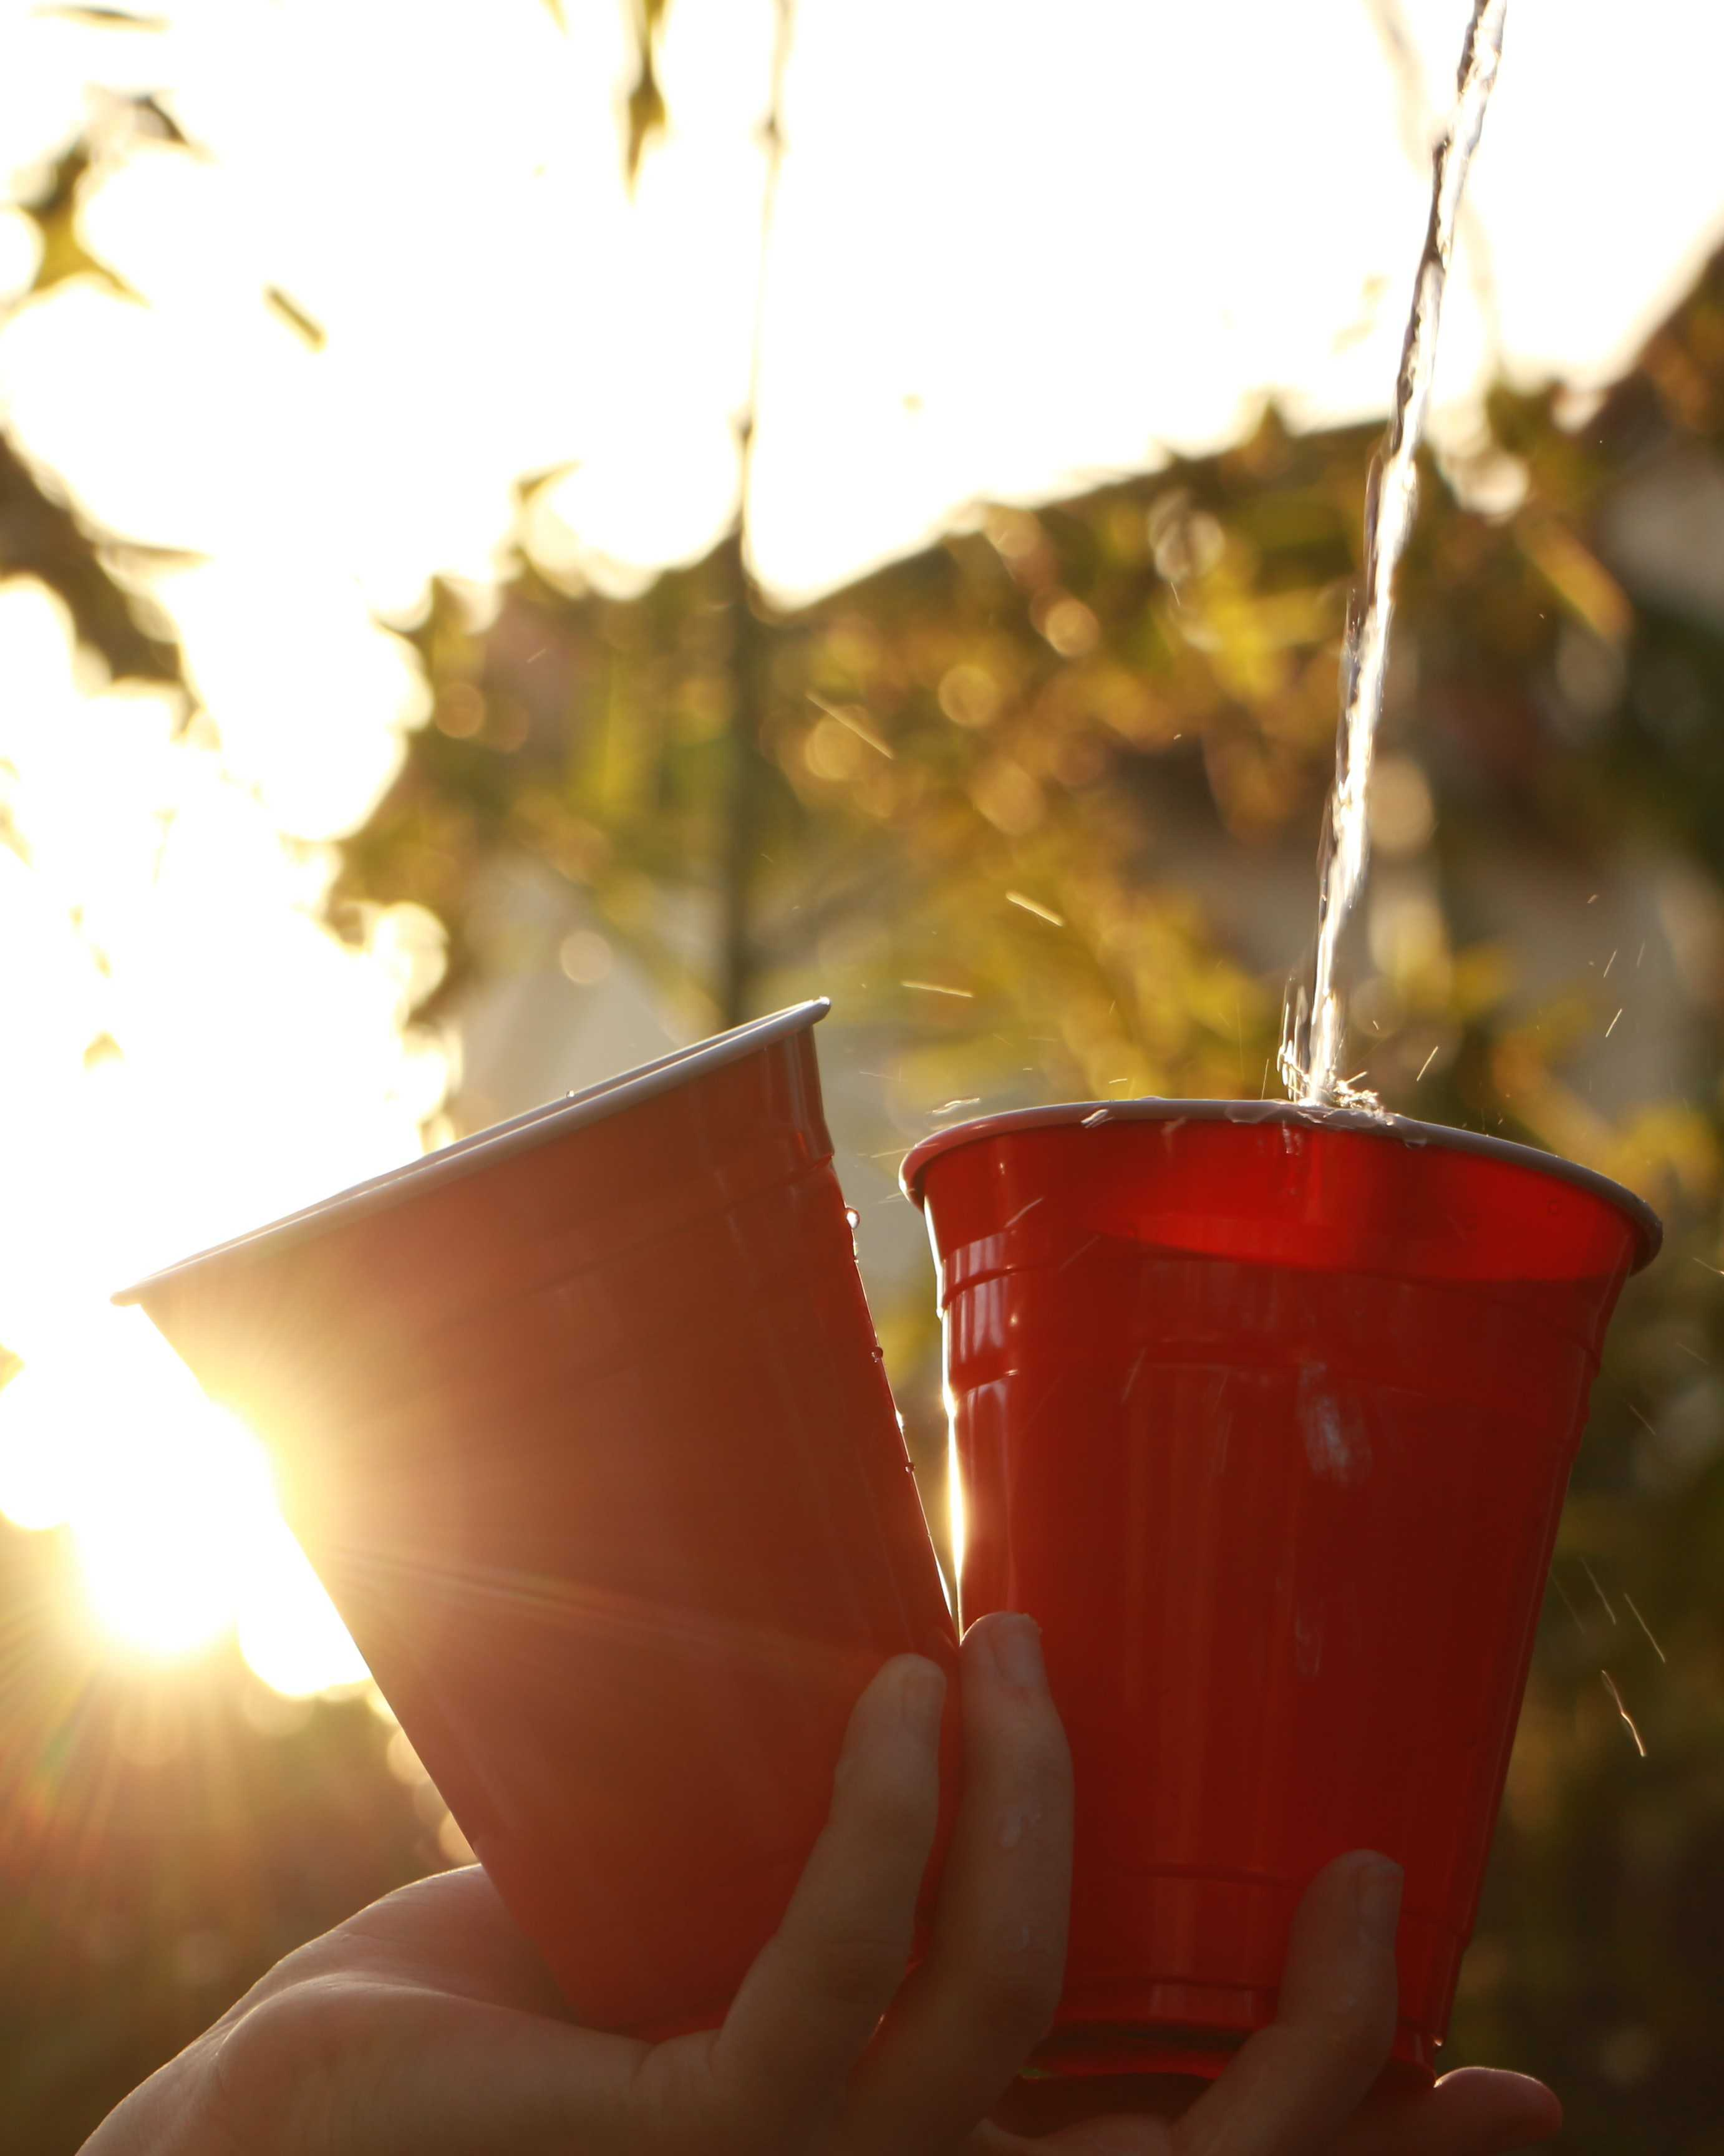 The CDC reported that people aged 12-20 consume 11 percent of all alcohol in the United States; 90 percent of this drinking is classified as binge drinking. Credit: Jason Messner / The Foothill Dragon Press